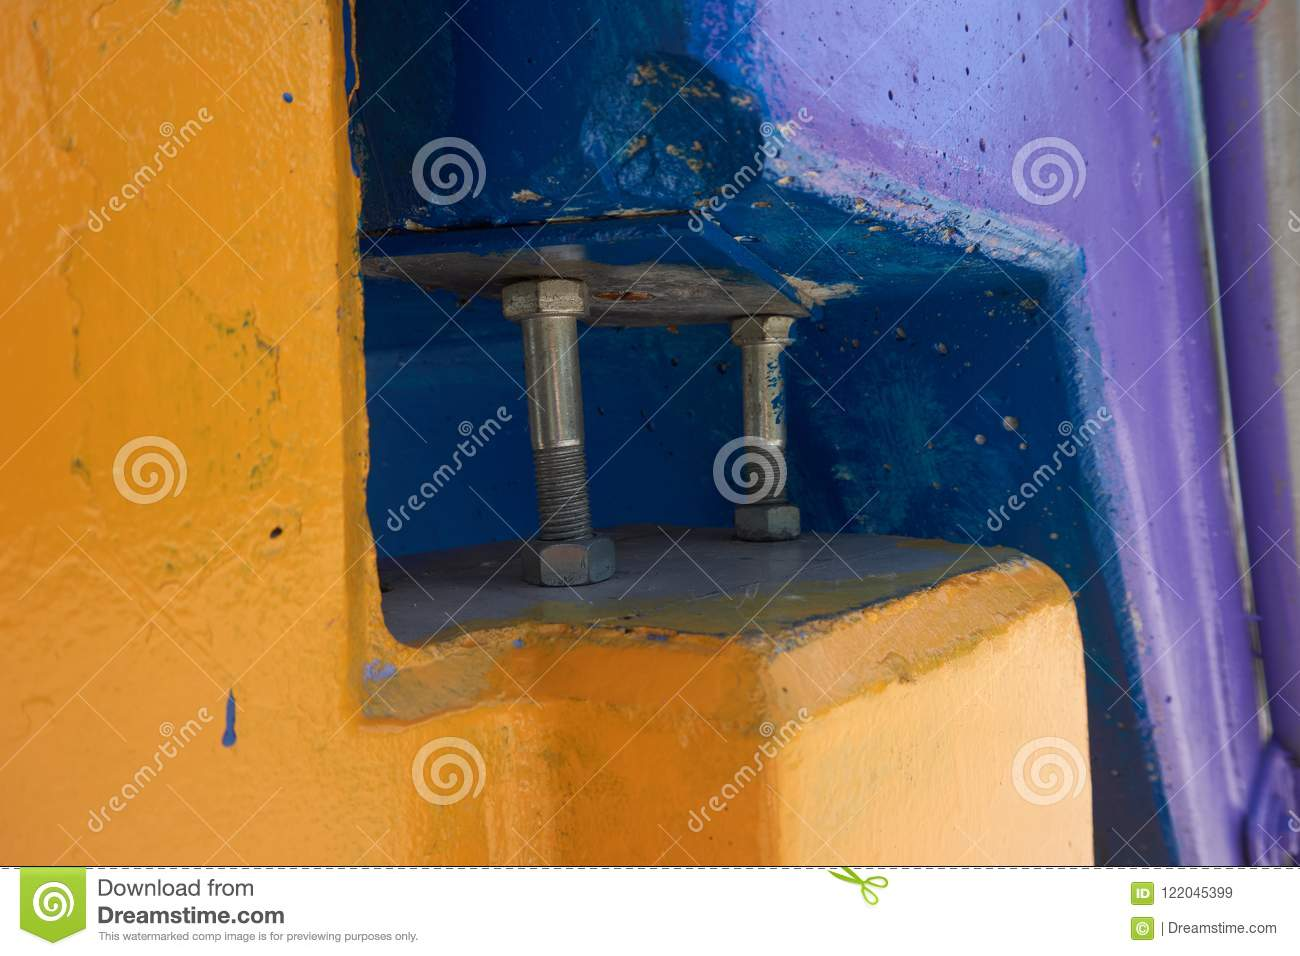 Bolts in between yellow and blue objects